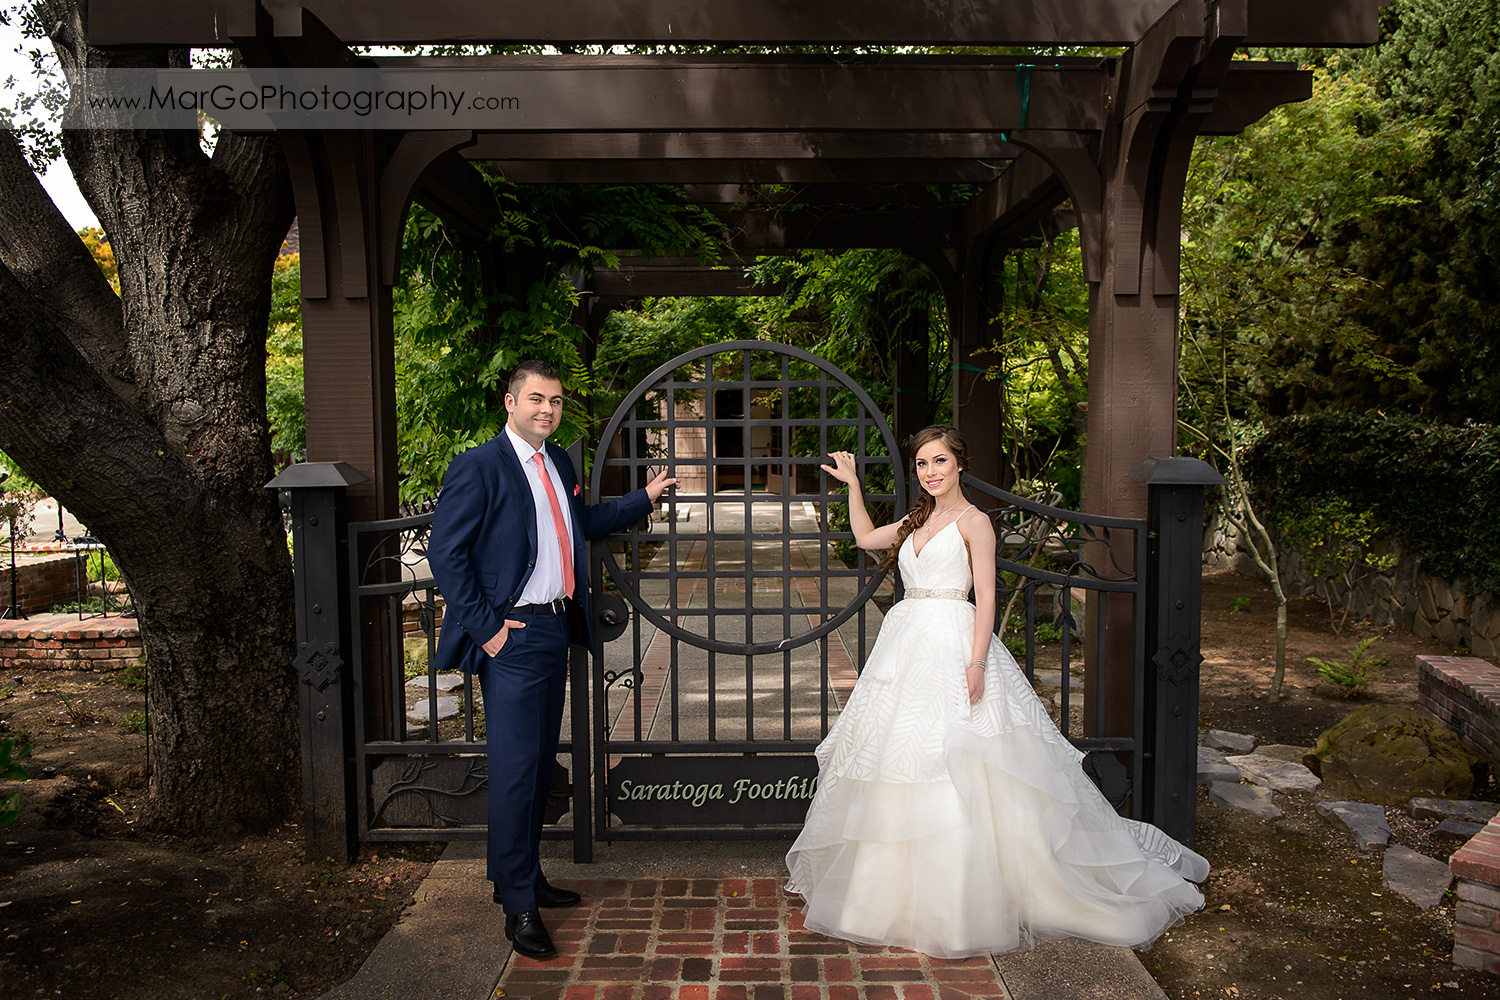 full body portrait of bride and groom standing in front of Saratoga Foothill Club gate